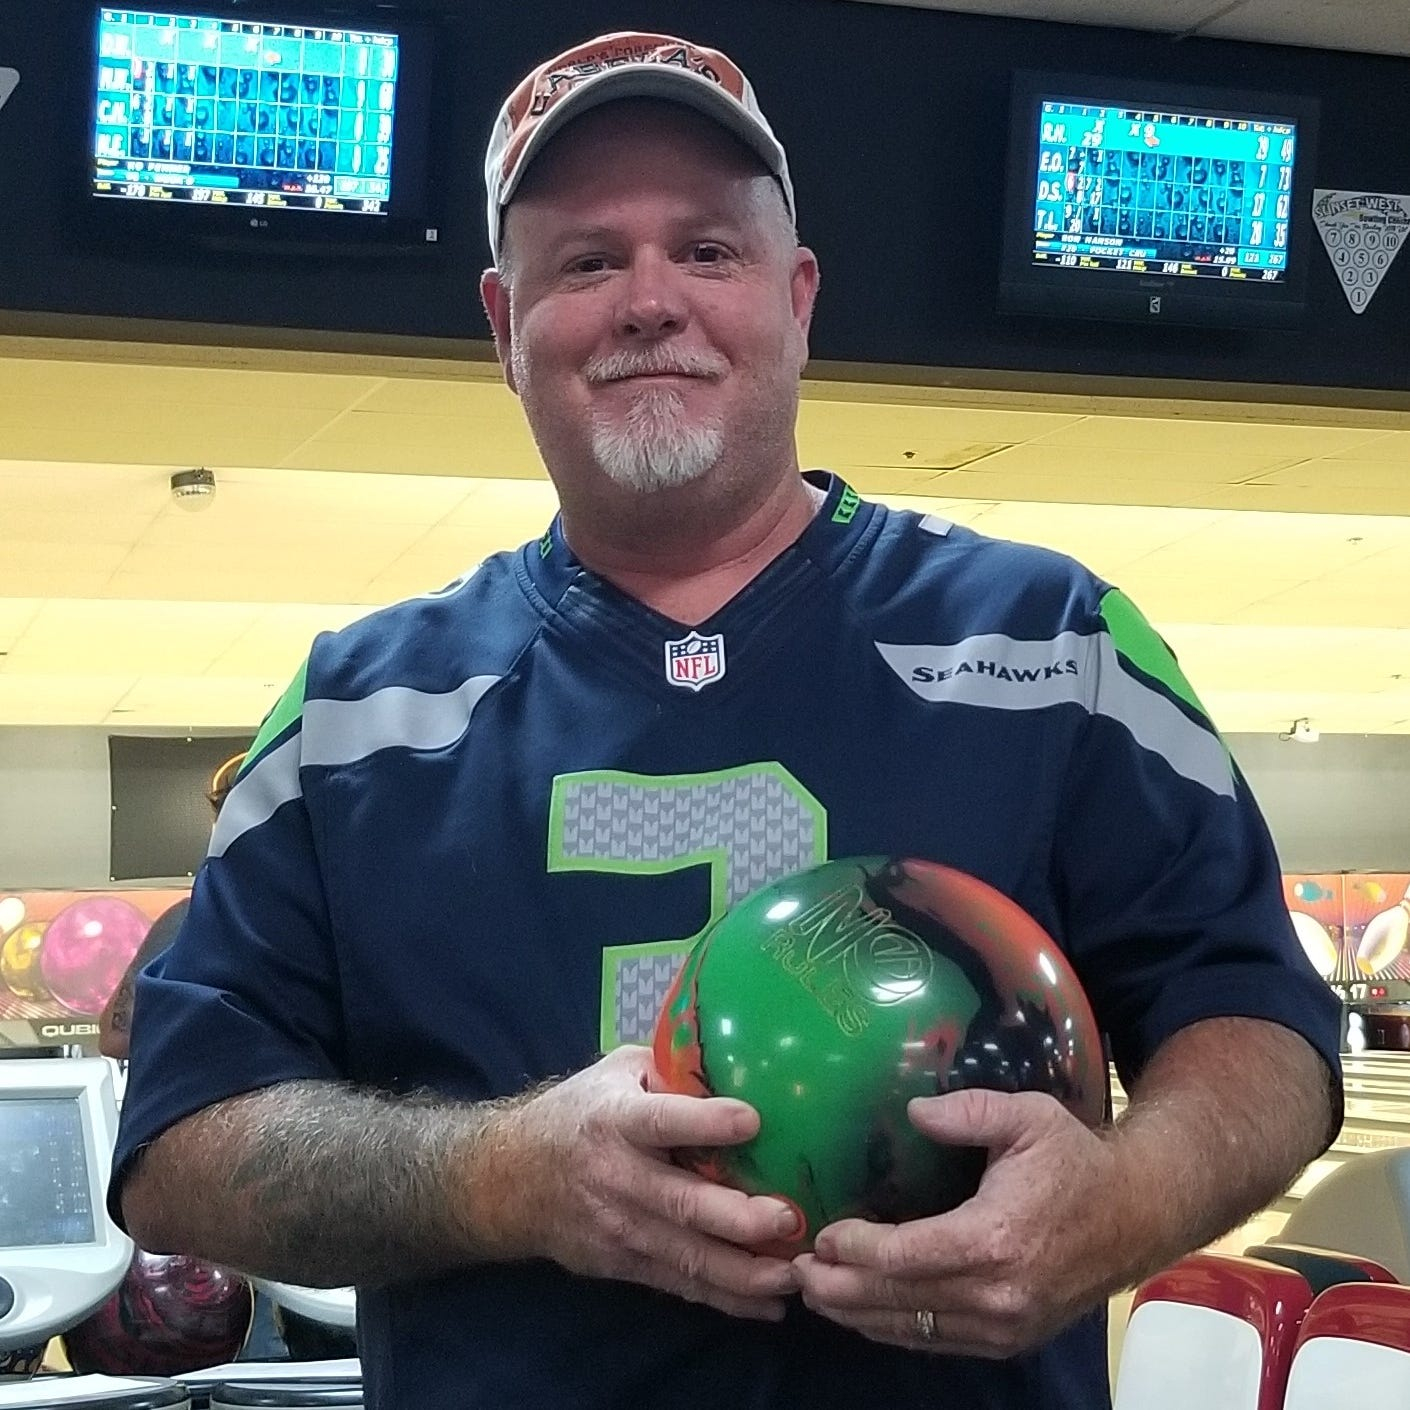 Doug Wickham recently bowled a career-high 710 series at Sunset in St. George.